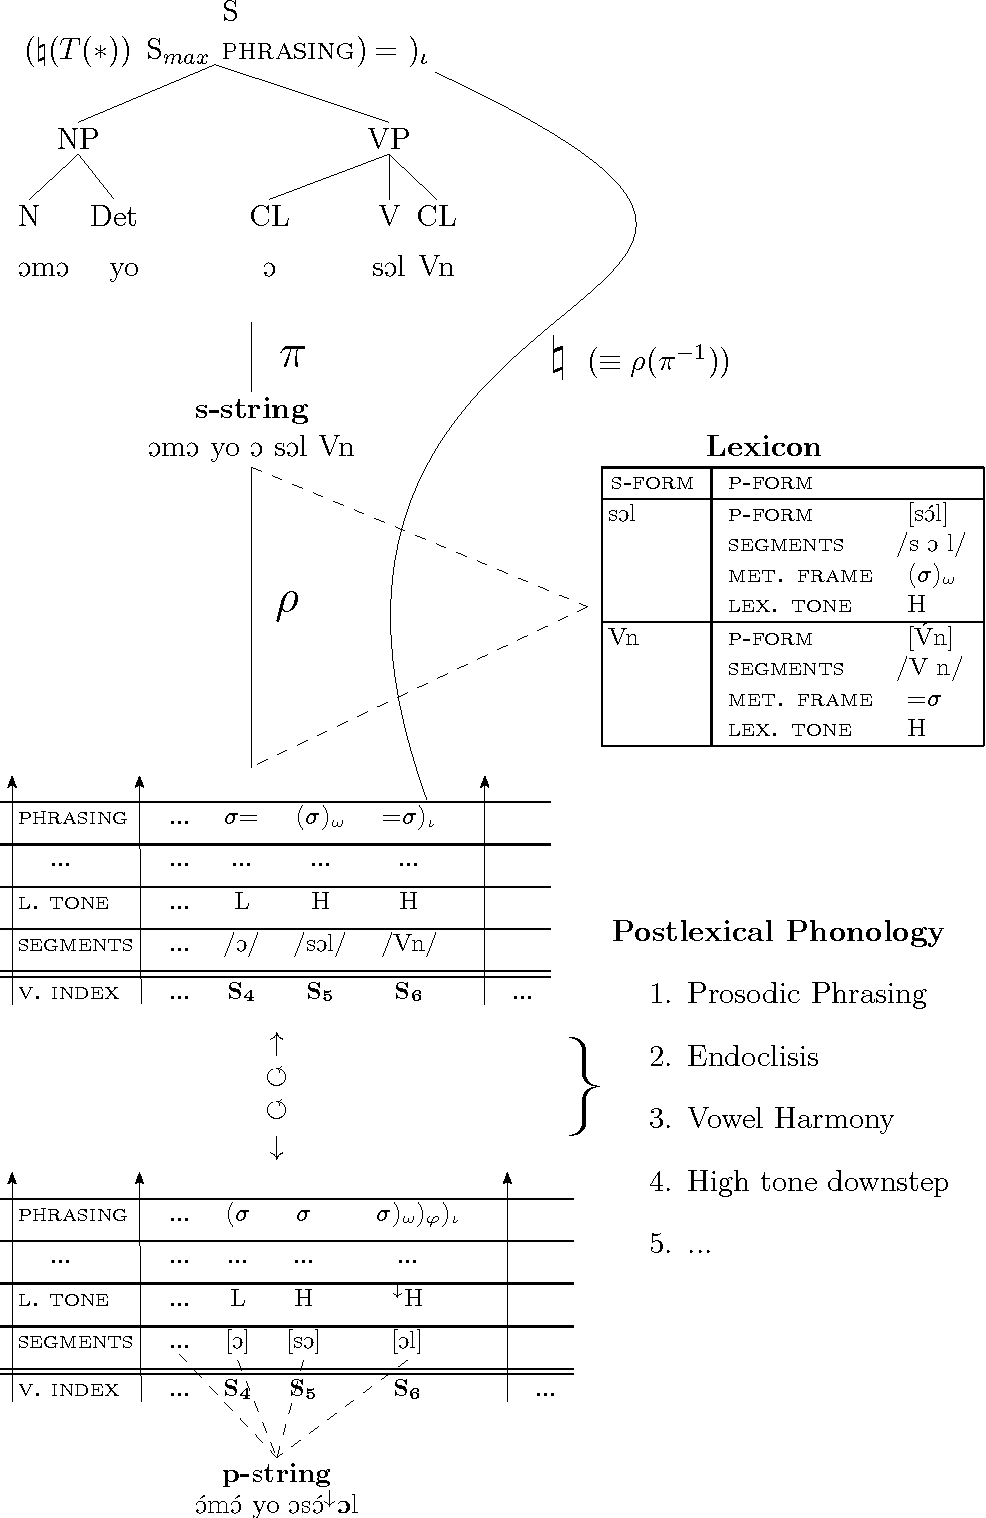 Figure 5.16: The complete syntax-prosody interface in LFG.